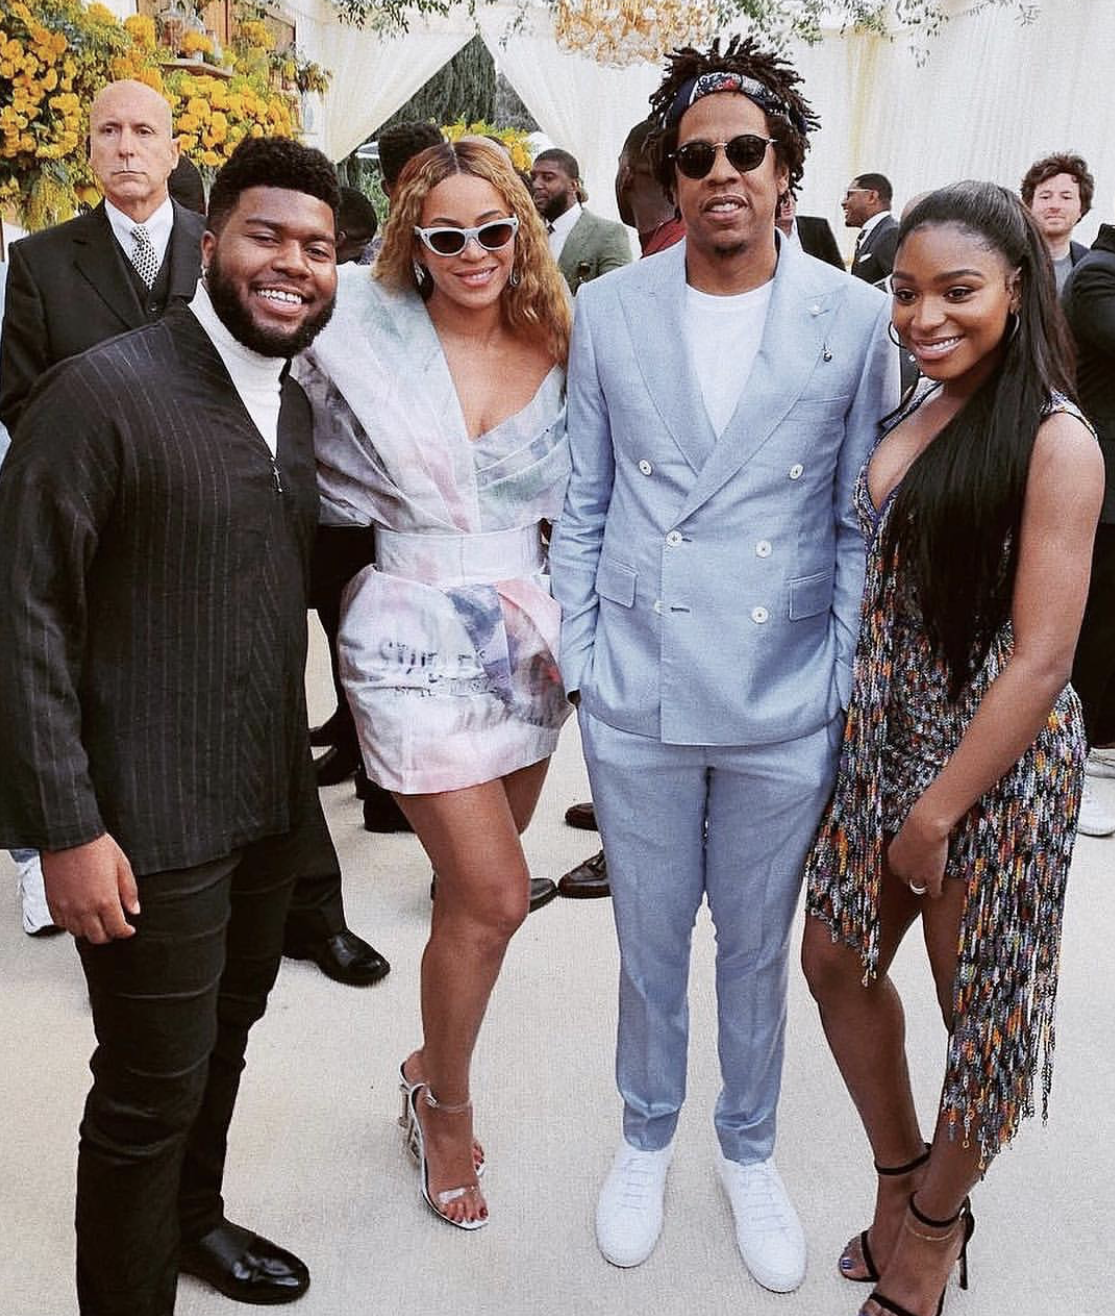 Beyonce_in_Balmain_Normani_in_Rami_Kadi_Jay_Z_in_Frere_Khalid_Roc_Nation_Brunch